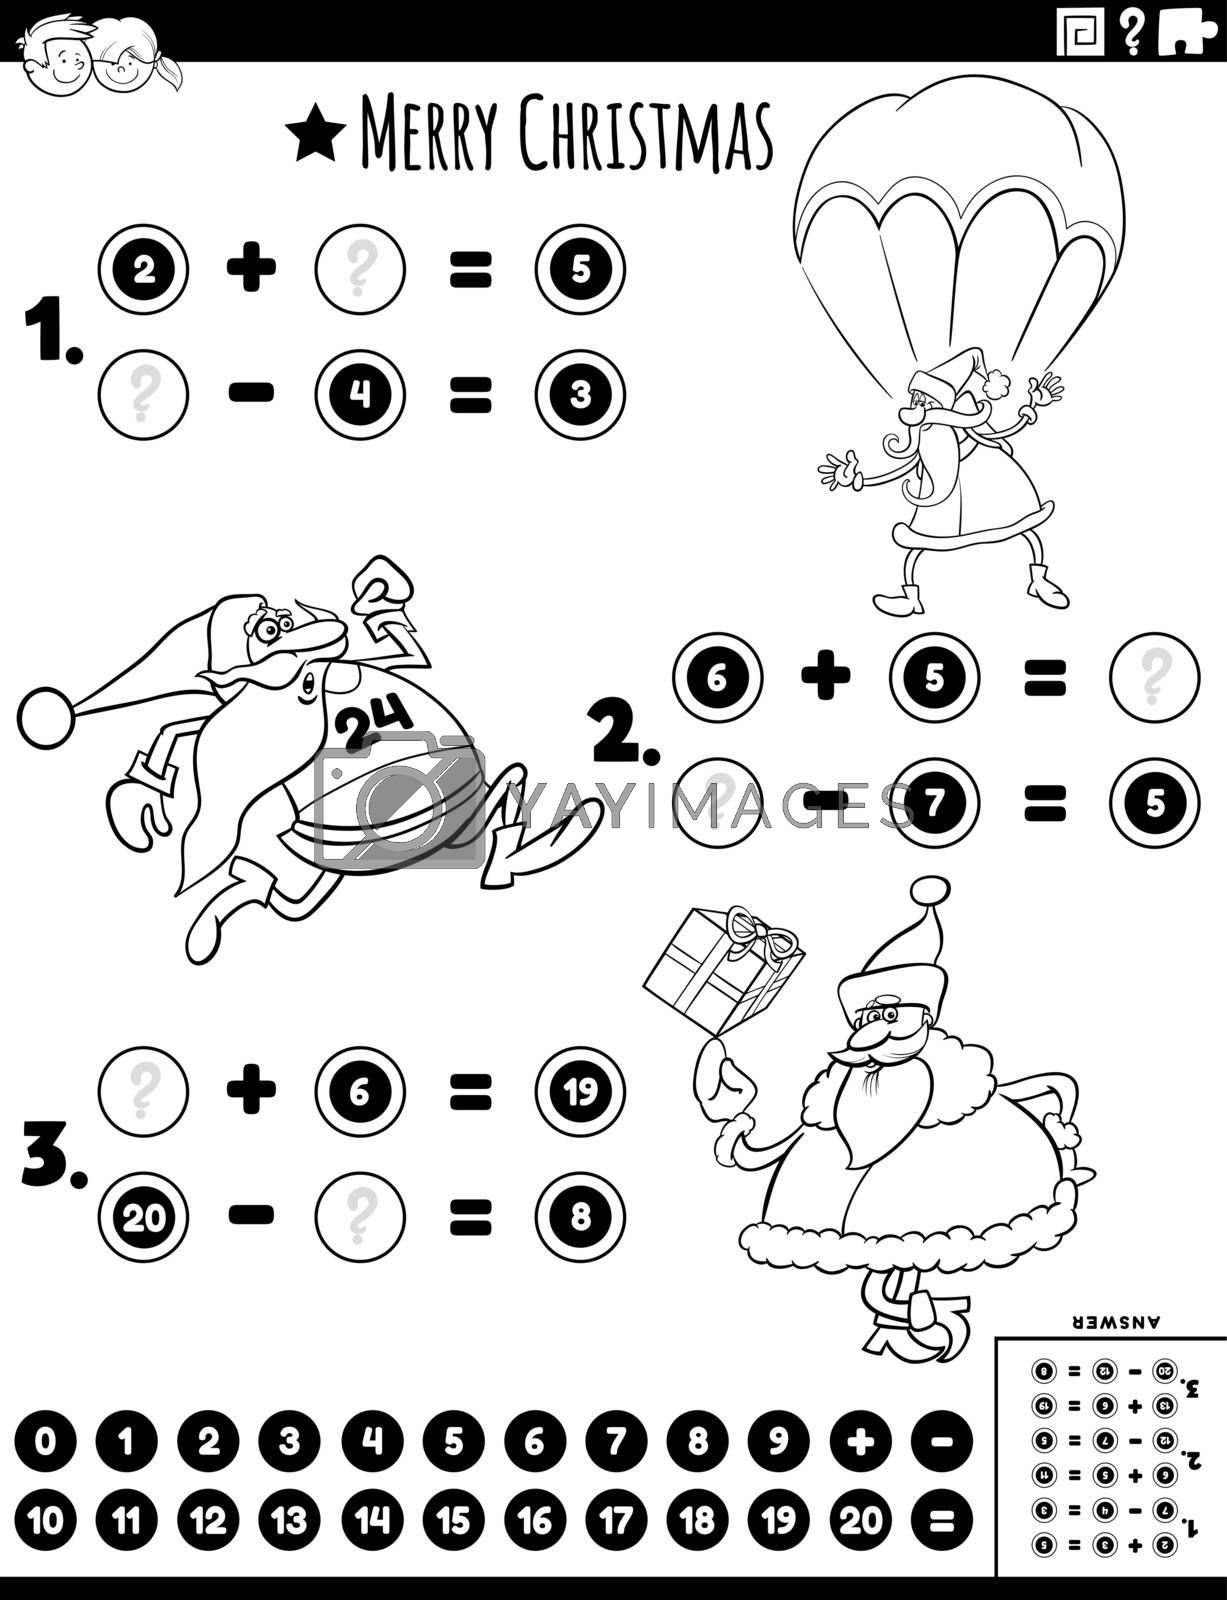 Black and White Cartoon Illustration of Educational Mathematical Addition and Subtraction Puzzle Task with Santa Christmas Characters Coloring Book Page